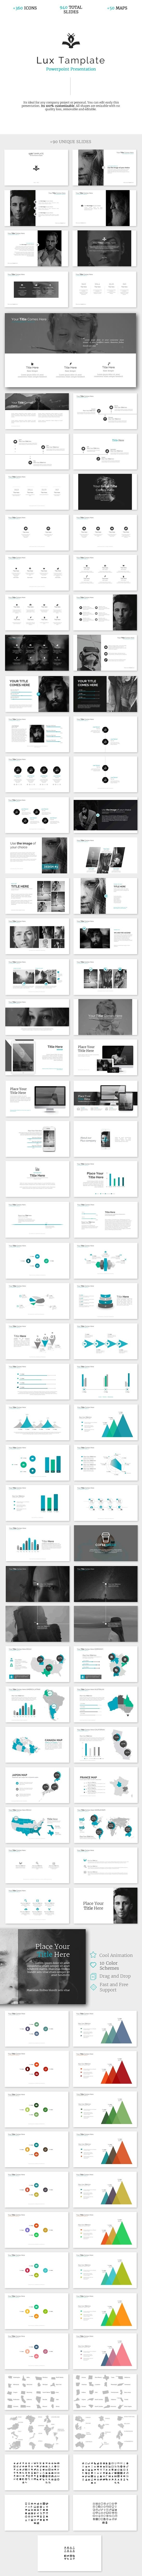 Lux - Powerpoint Template - Business PowerPoint Templates